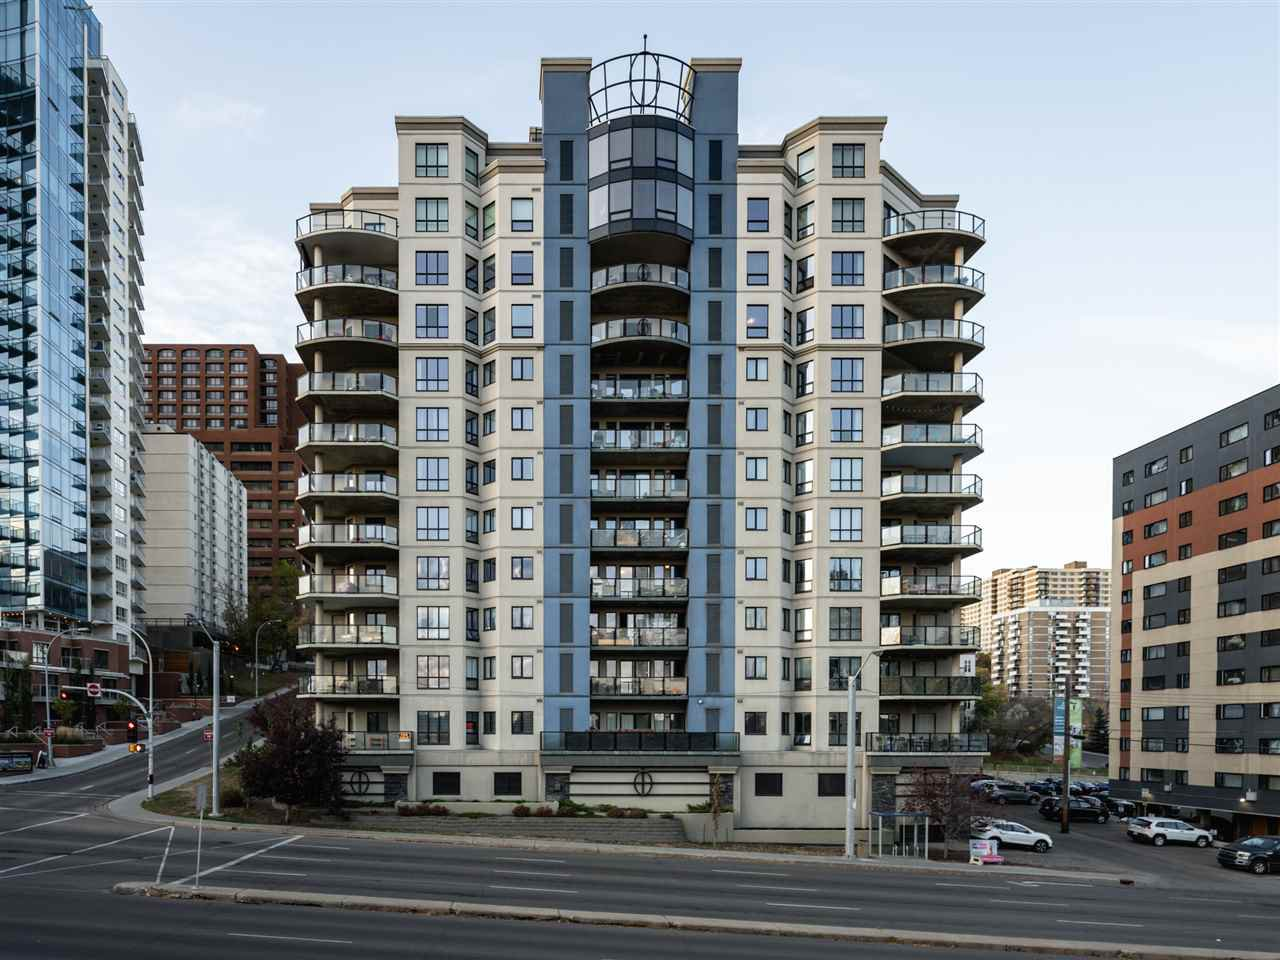 Main Photo: 704 9707 106 Street in Edmonton: Zone 12 Condo for sale : MLS®# E4217523